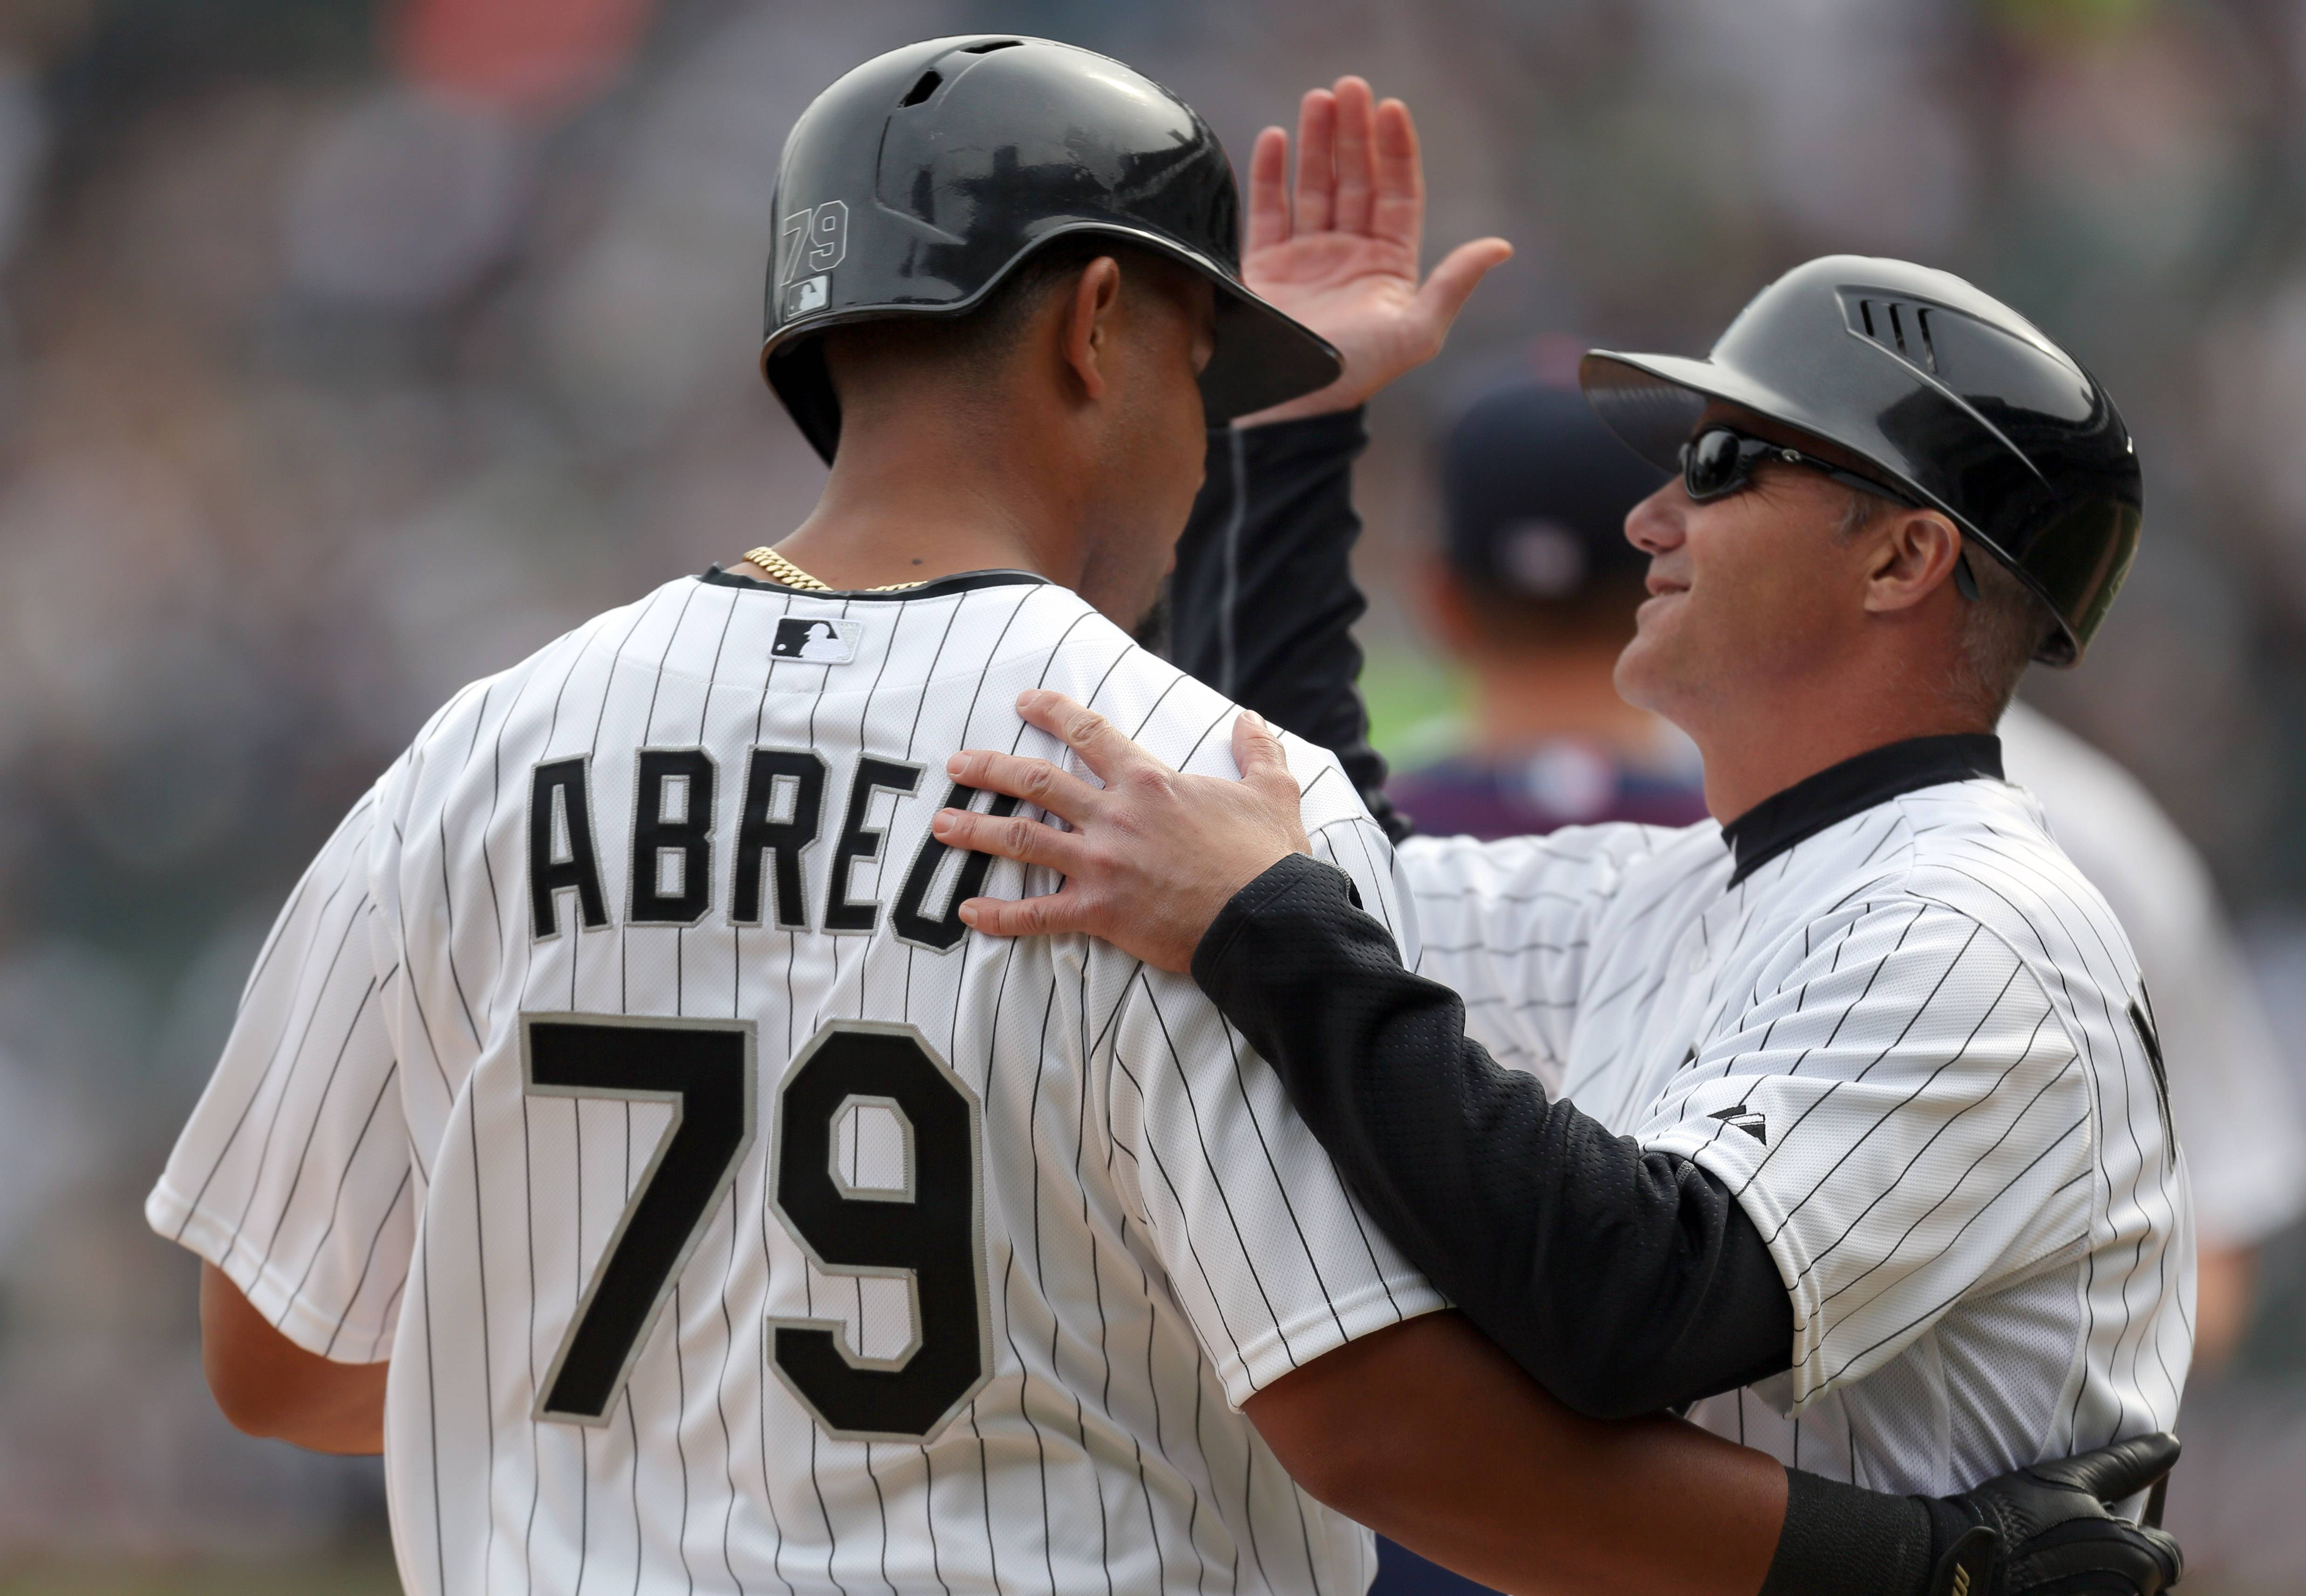 Chicago White Sox third base coach Joe McEwing congatulates Chicago White Sox first baseman Jose Abreu after a hit.